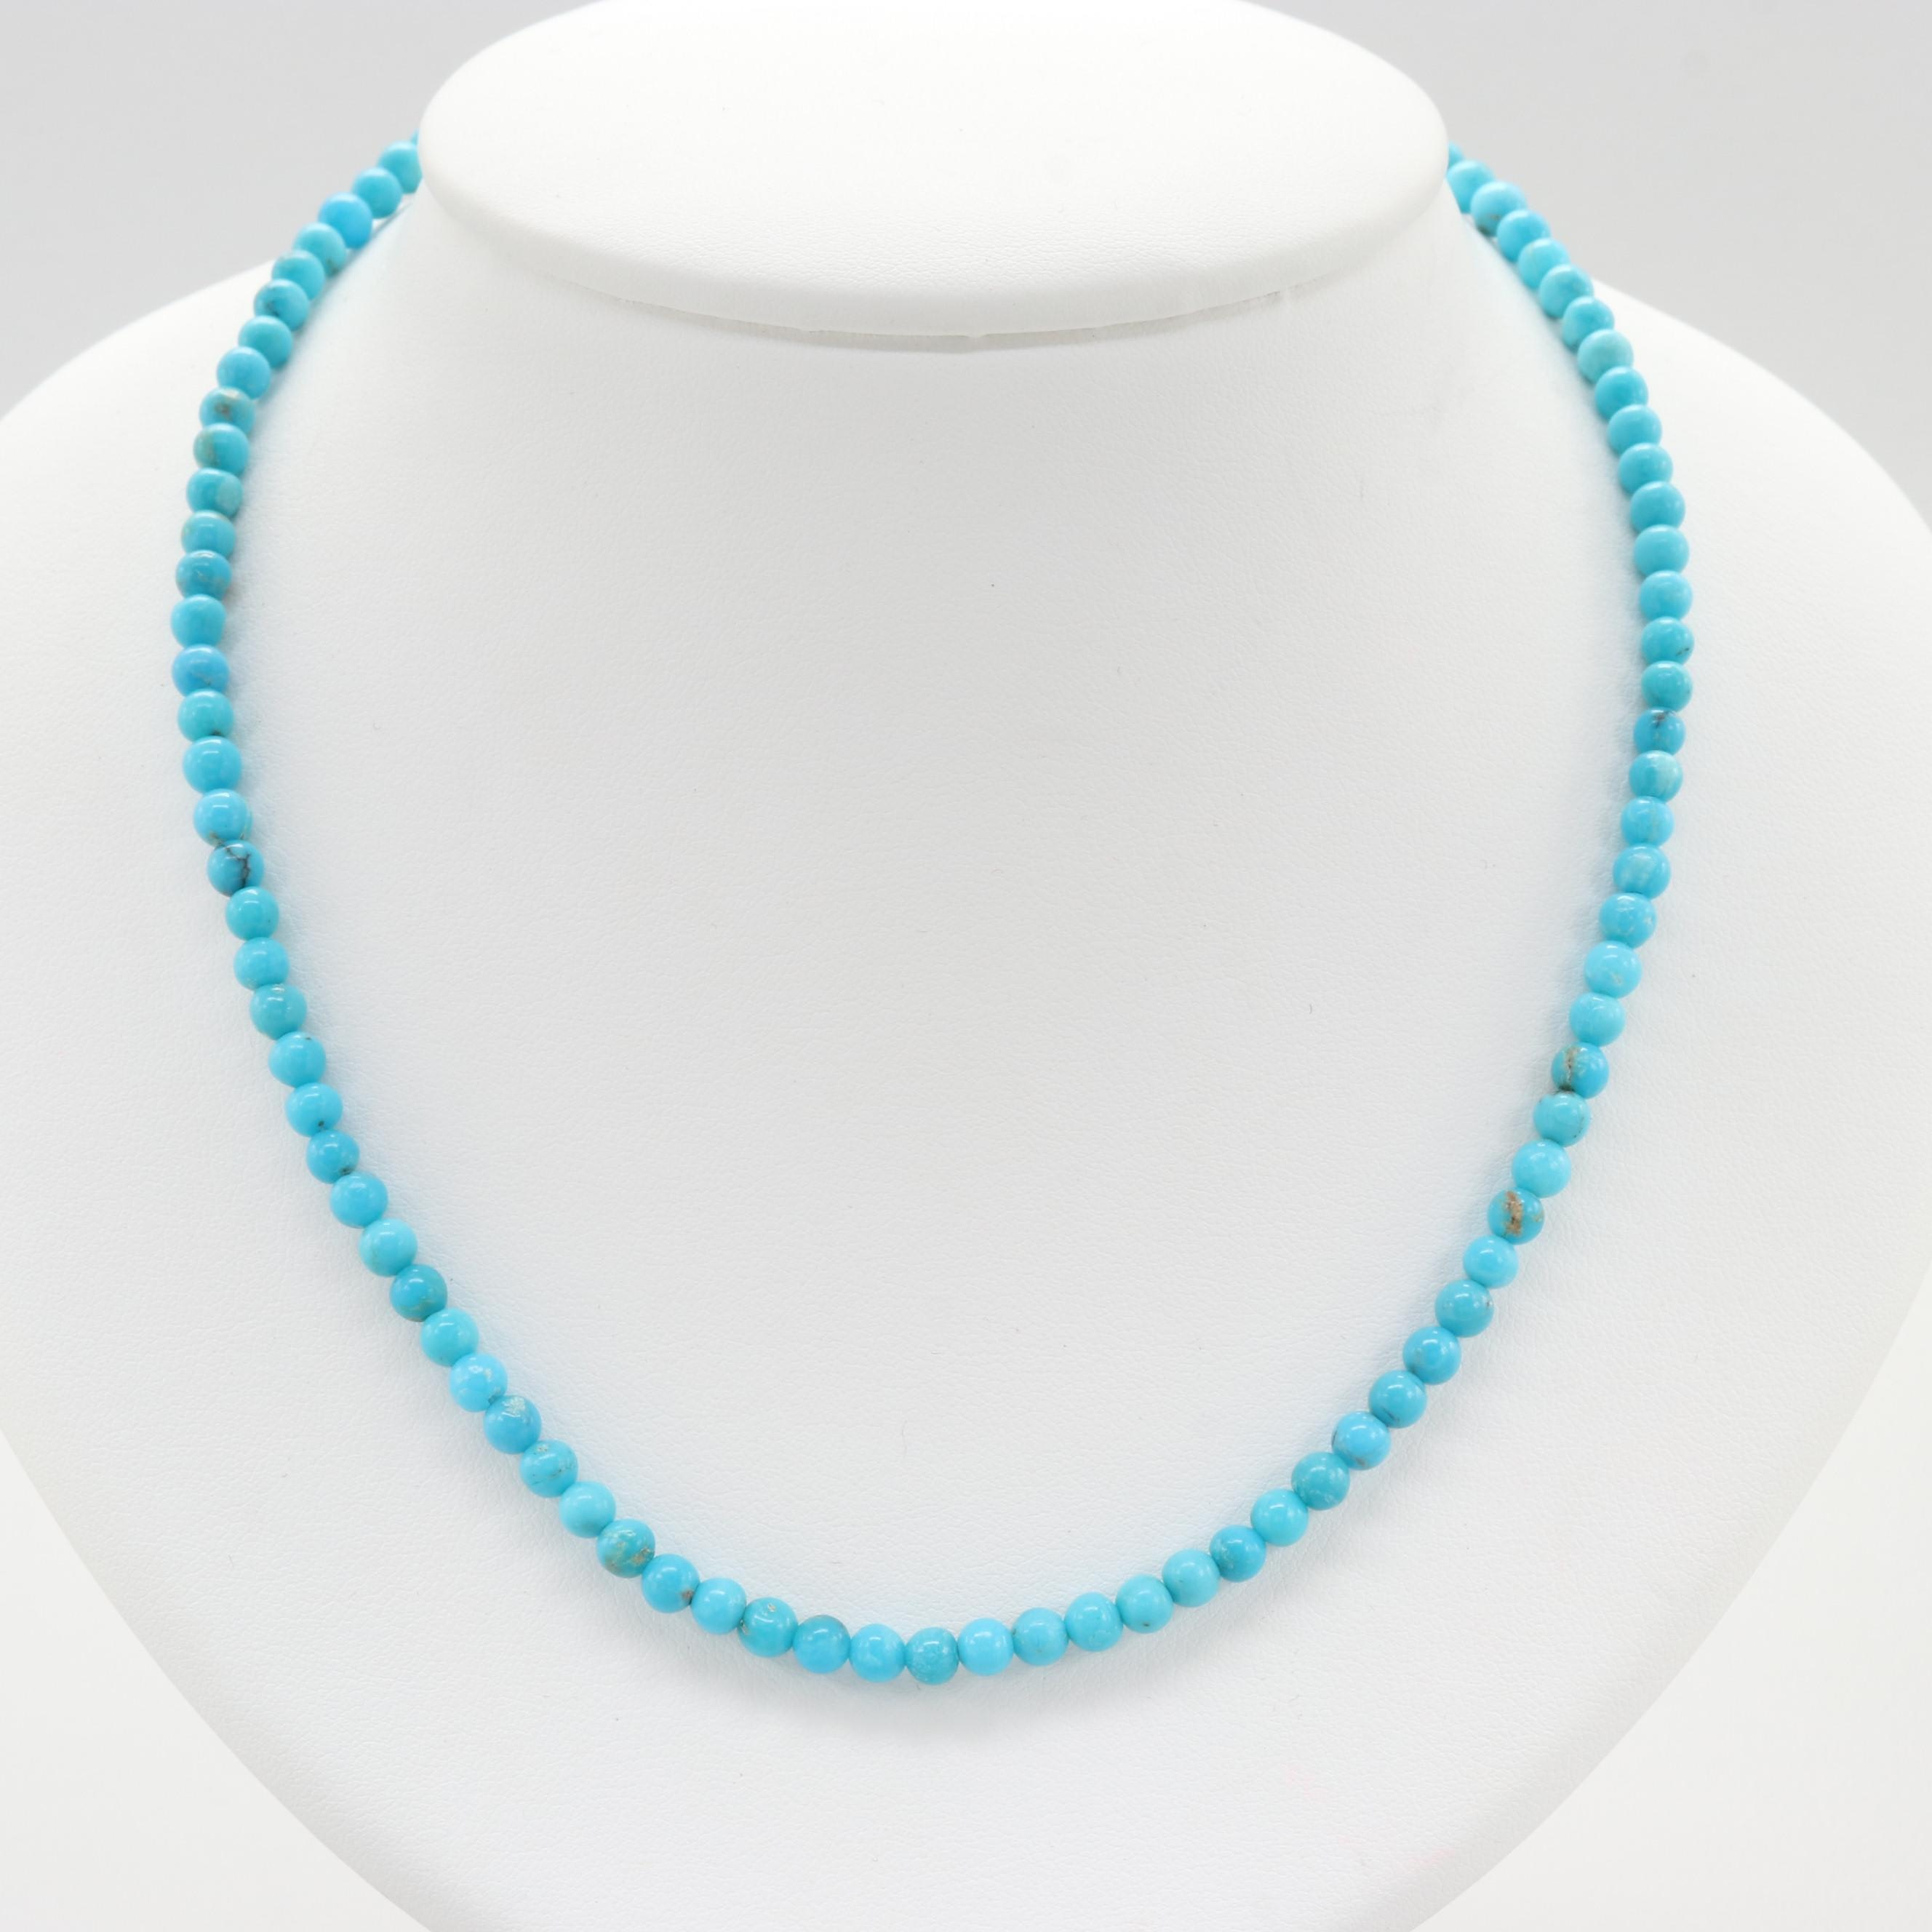 14K Yellow Gold Clasped Dyed Turquoise Necklace